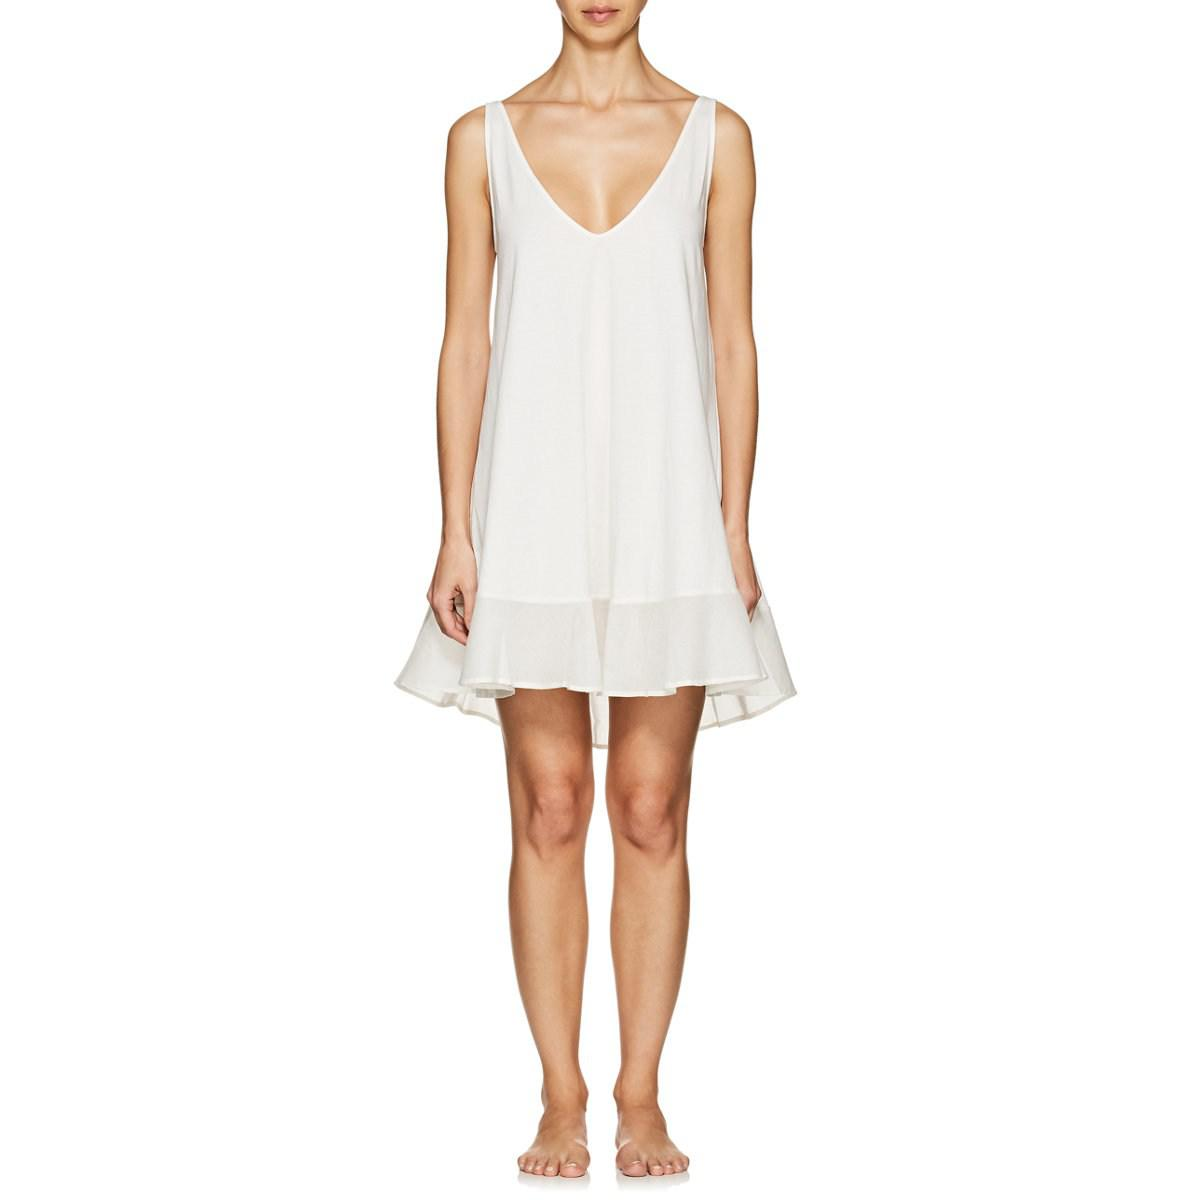 Womens Bettina Cotton Nightgown Skin Cheap Manchester Buy Cheap Inexpensive Buy Cheap Official Site Authentic For Sale jgNY5D